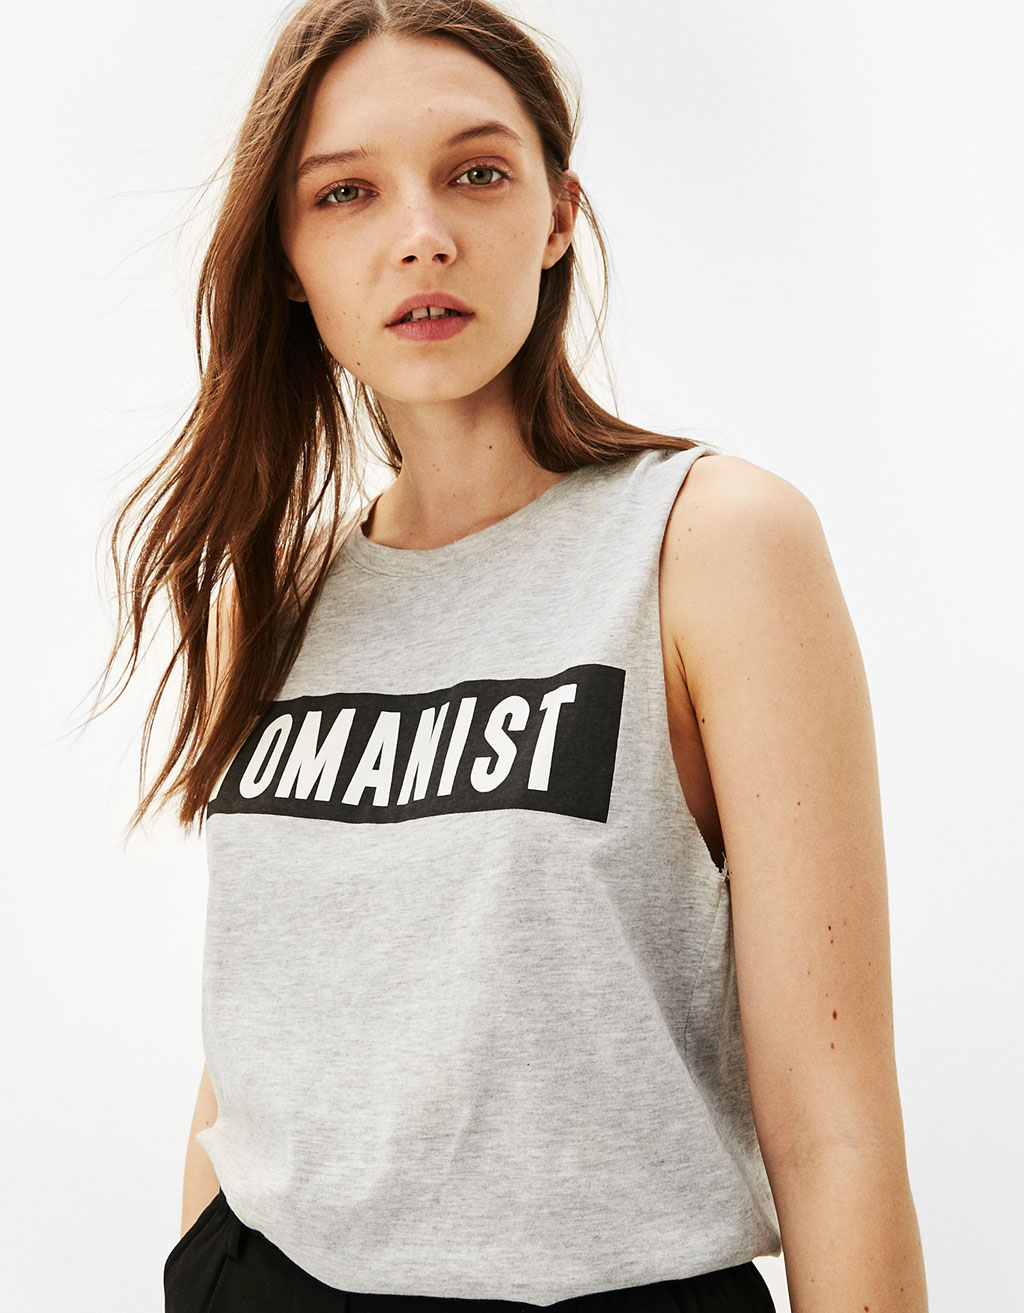 Ärmelloses Shirt »Womanist/Boyfriend«